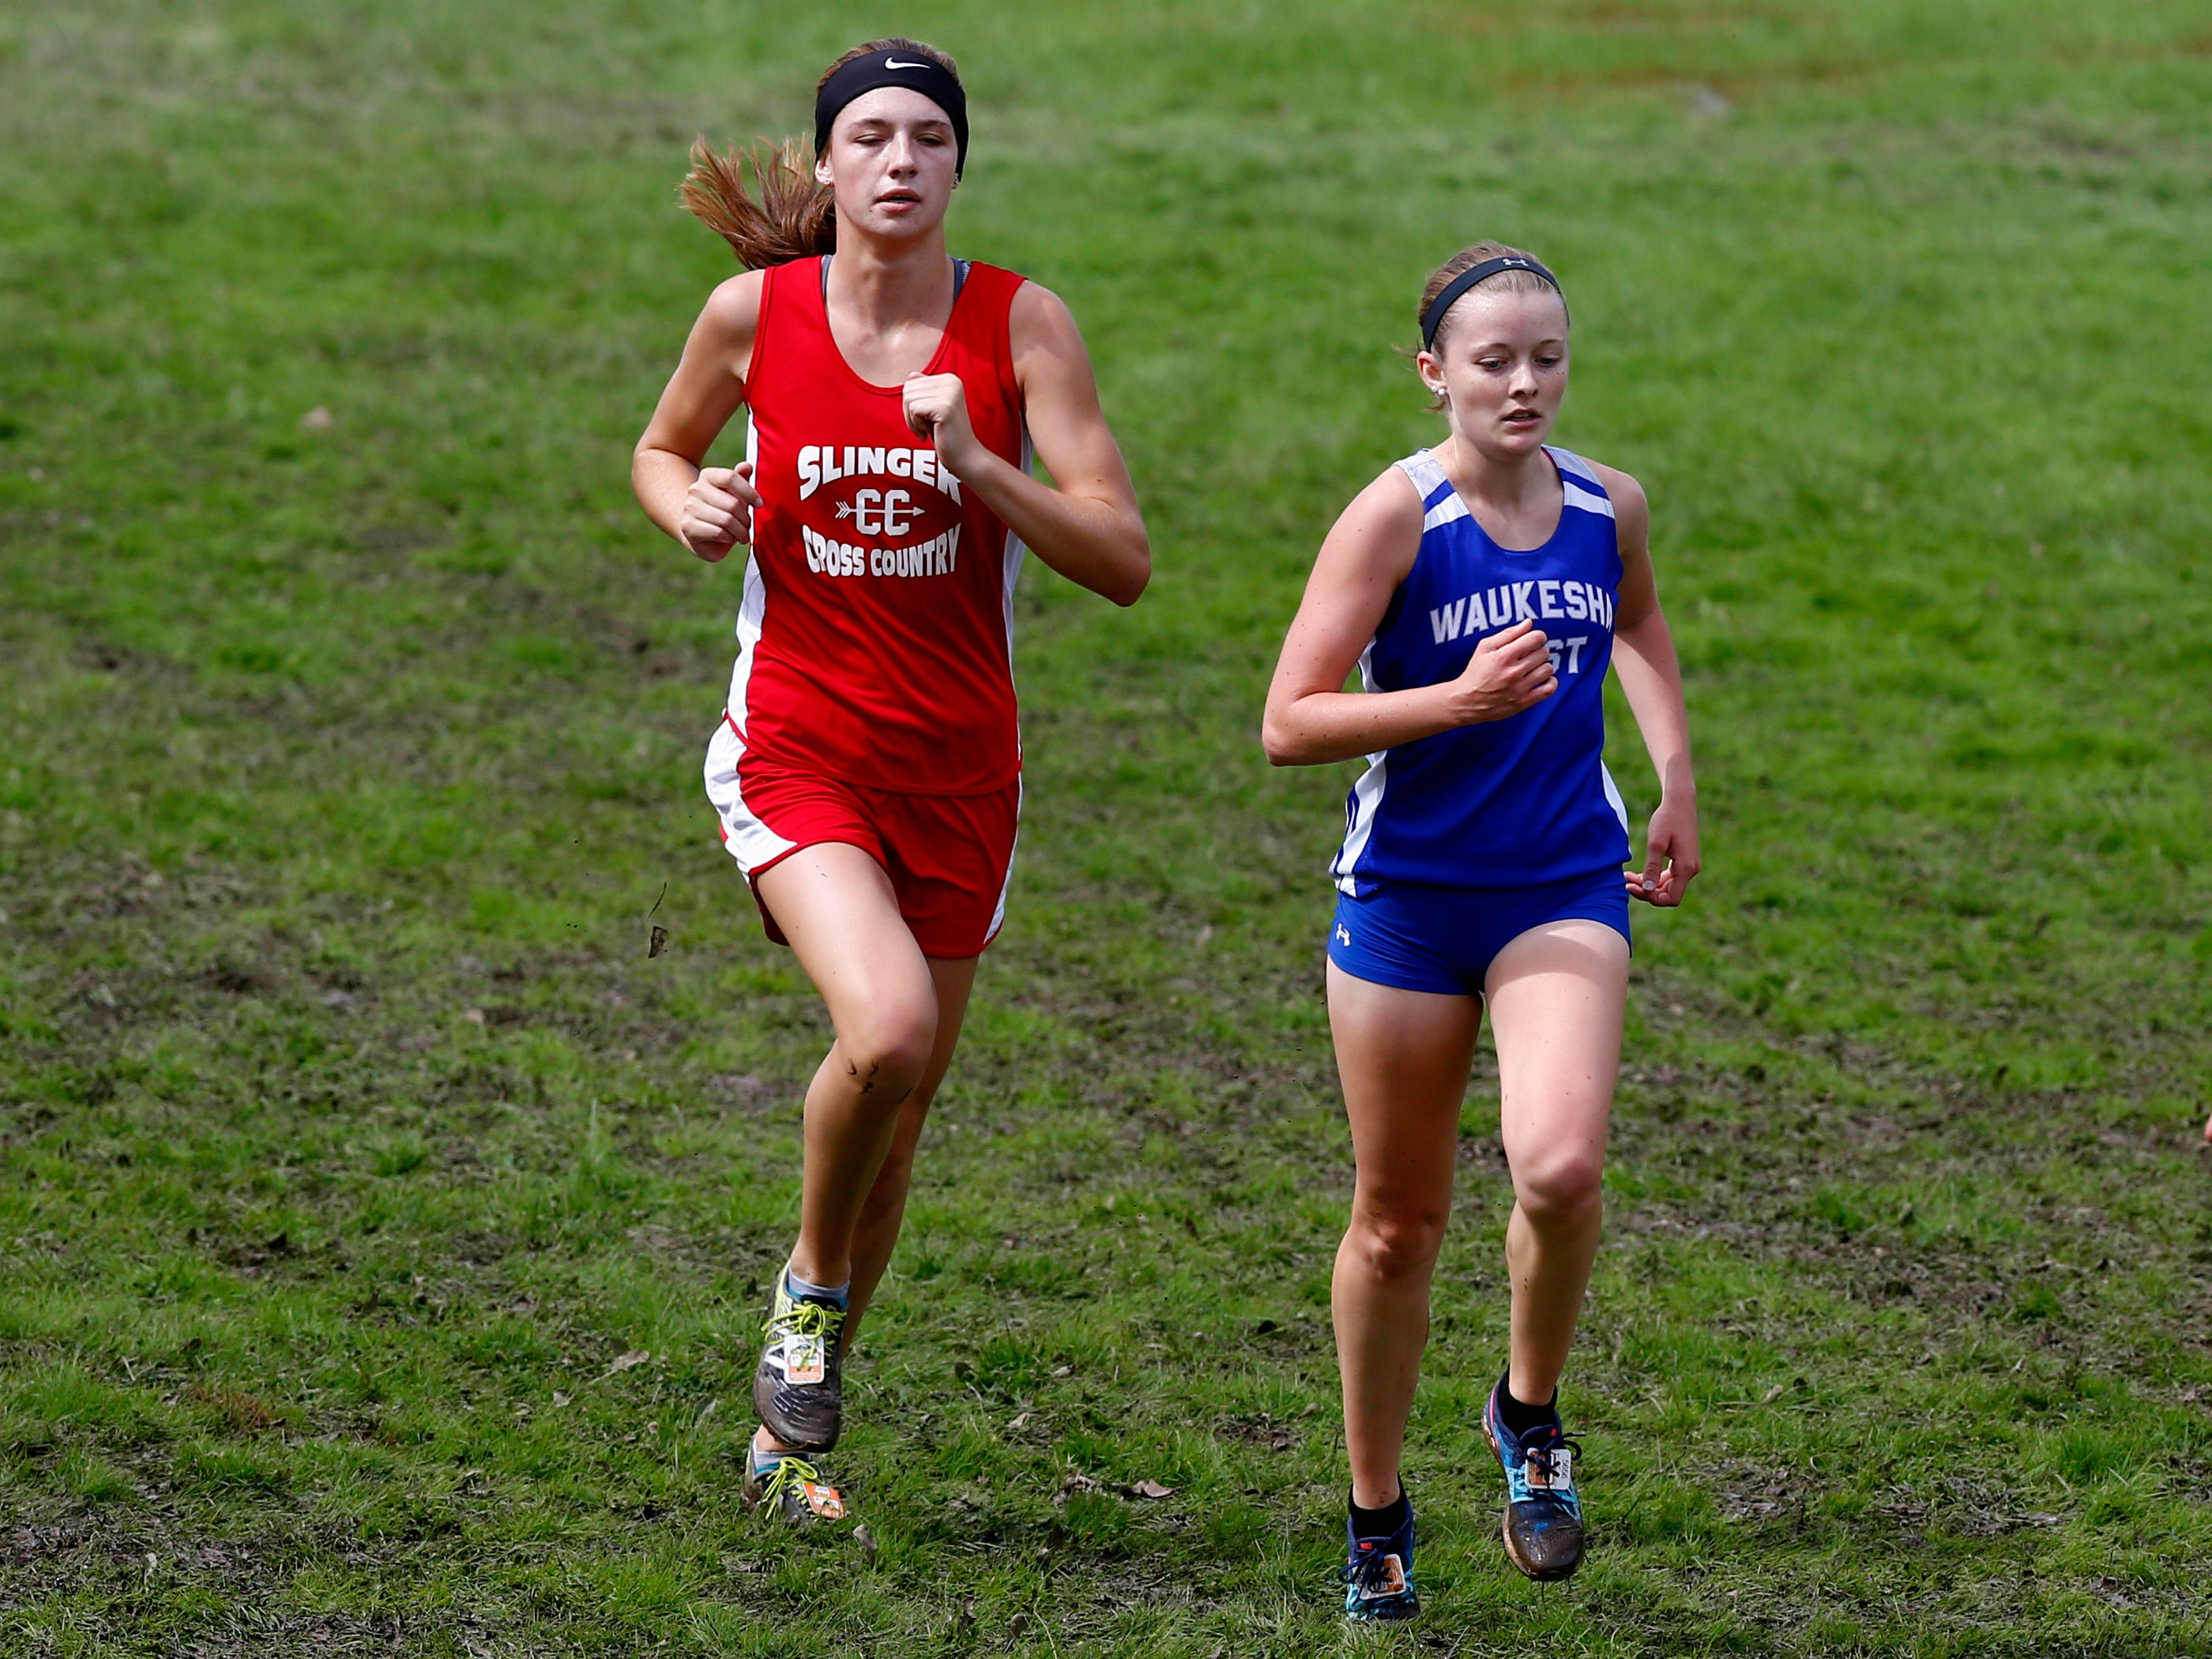 Waukesha West's Allyssa Reeves tries to hold off Slinger's Makaila Groves in the final stretch of the Menomonee Falls Matt Hadler Cross Country Invitational at Rotary Park where Reeves finished fourth and Groves third of 76 runners on Sept. 8.